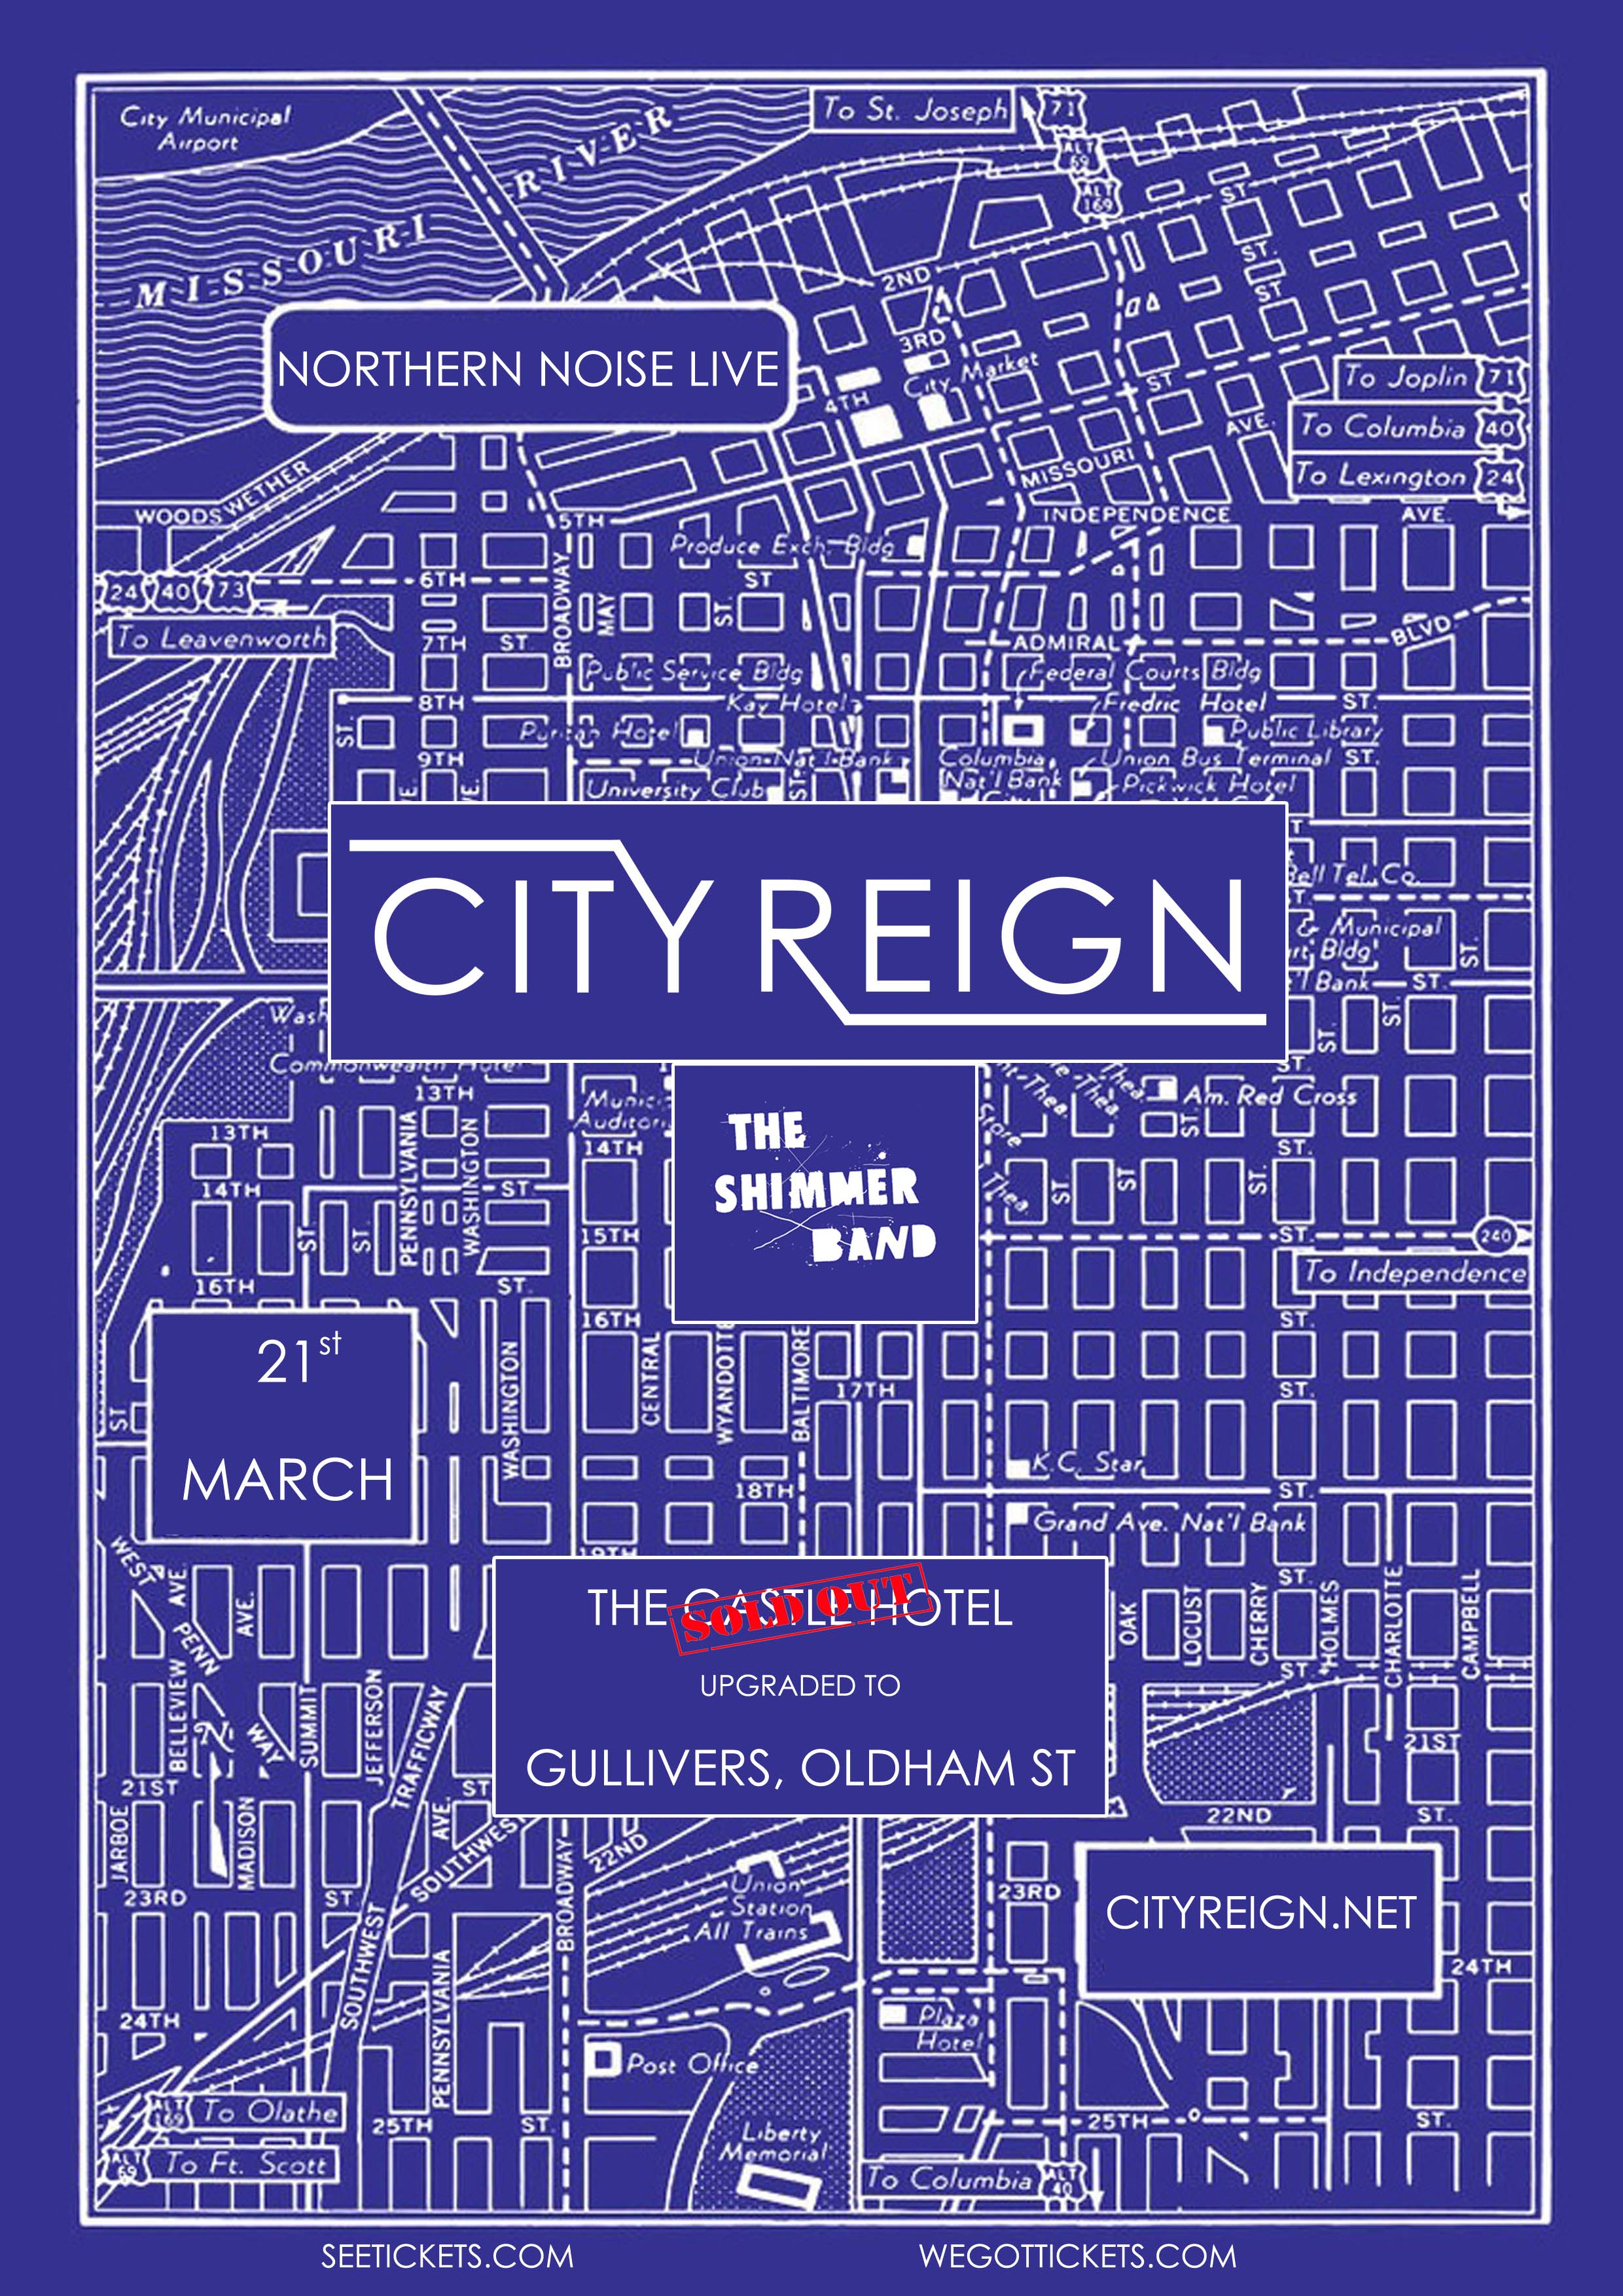 Northern Noise Live Poster Feat. City Reign